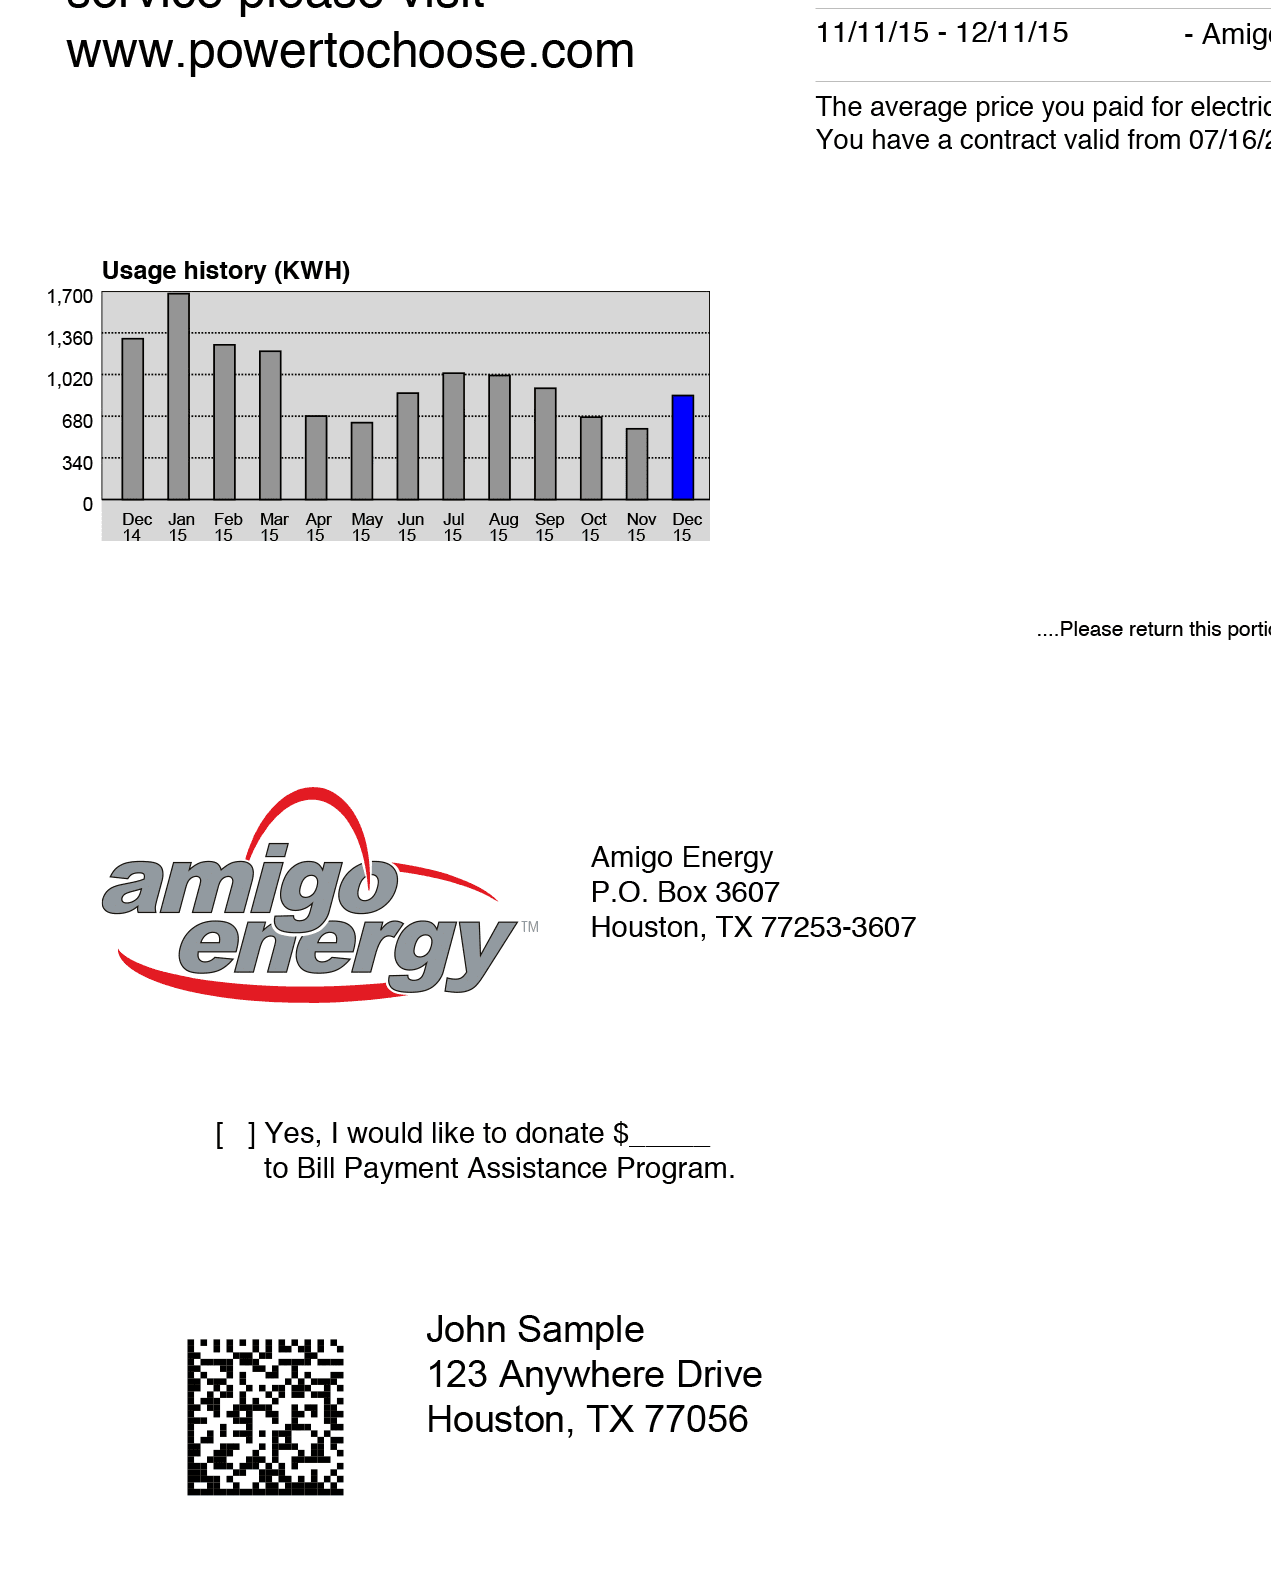 855-449-1899 Customer Support: Understanding My Bill | Amigo Energy